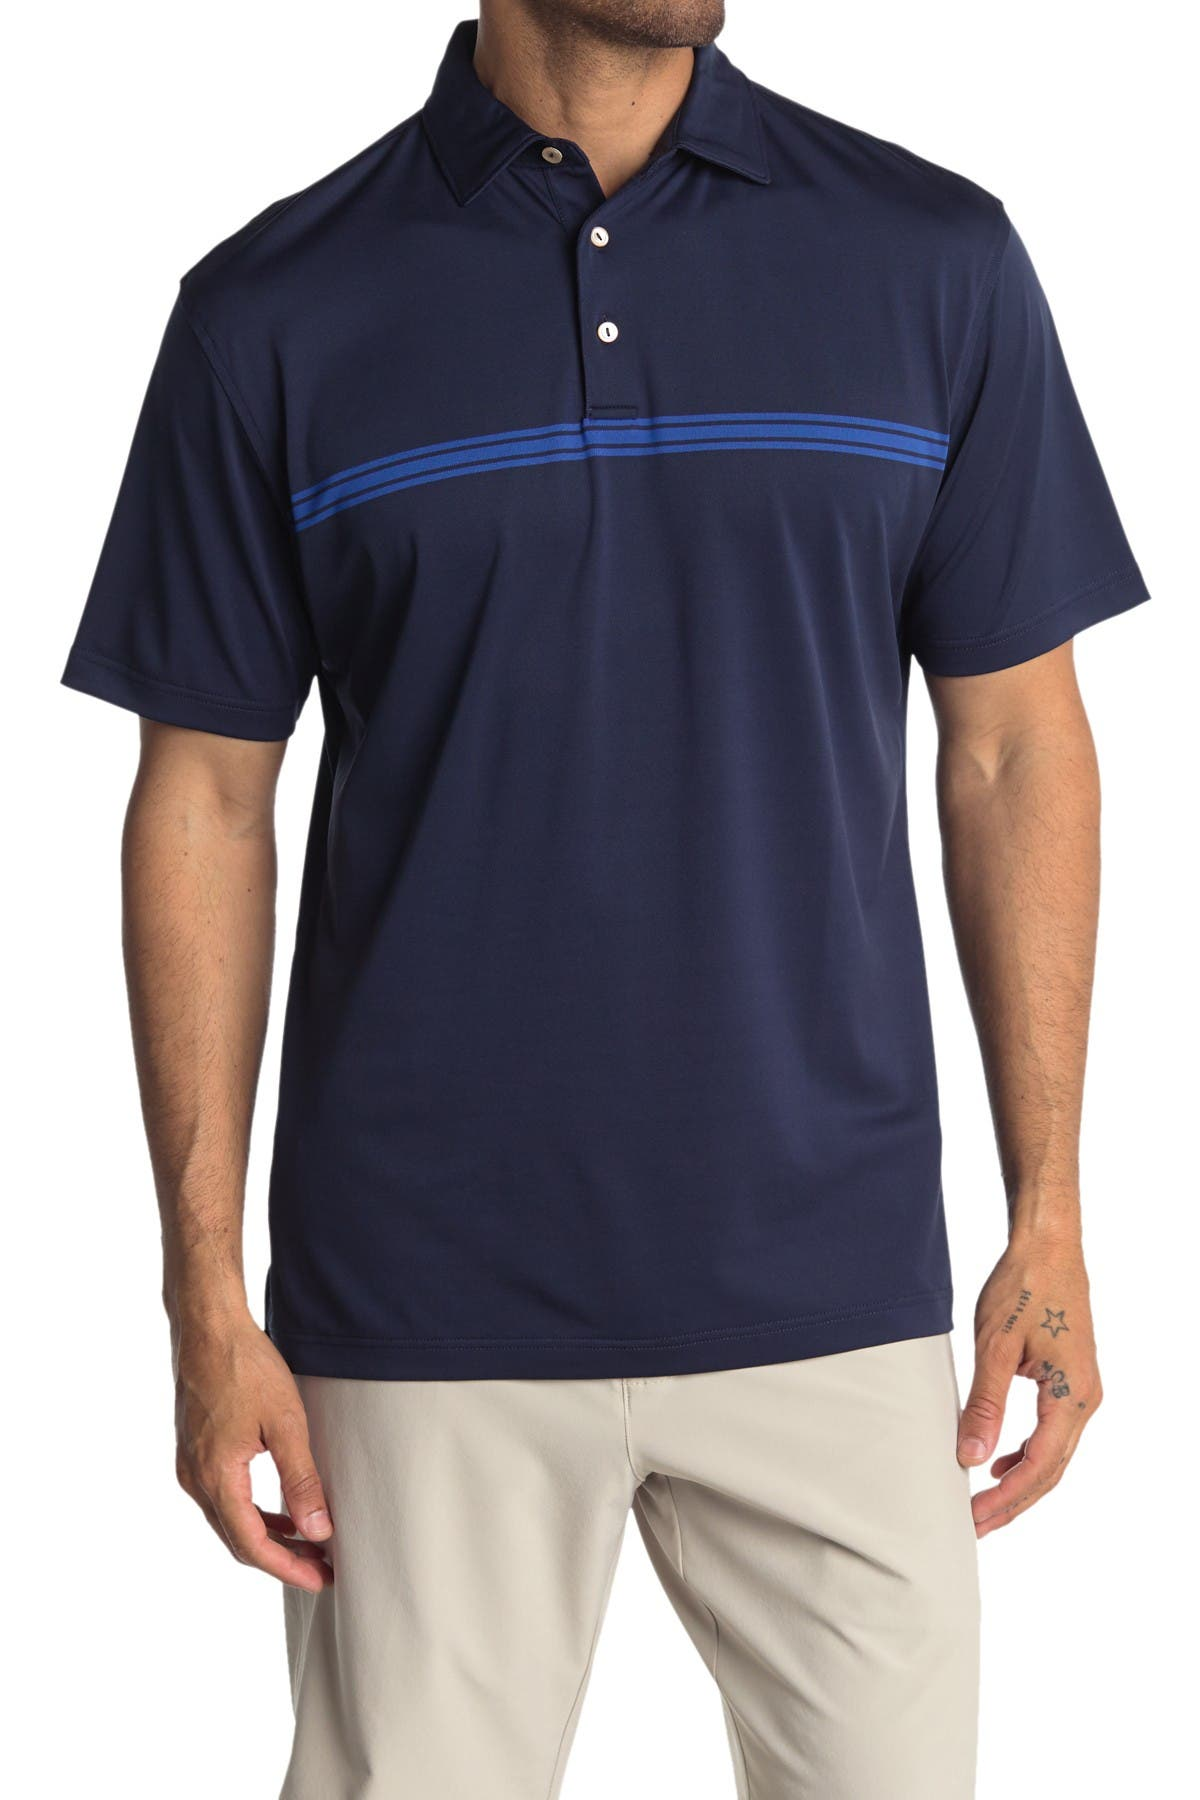 Image of Peter Millar Pacific Stripe Chest Polo Shirt